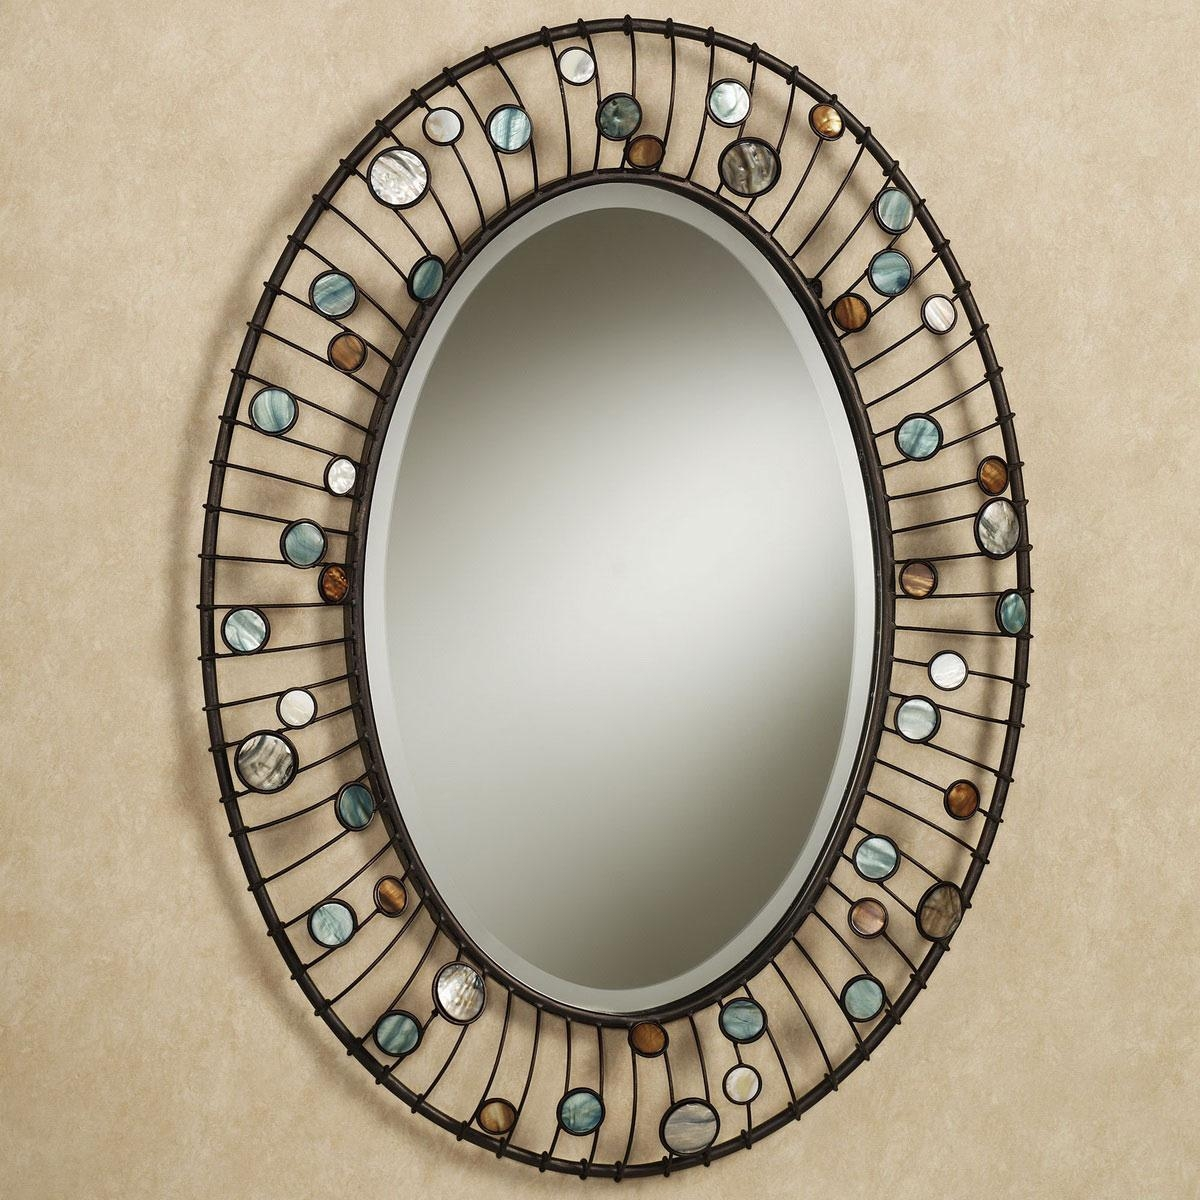 Decorative Bathroom Mirrors | Bathroom Decorating Ideas With Oval Bath Mirrors (Image 7 of 20)